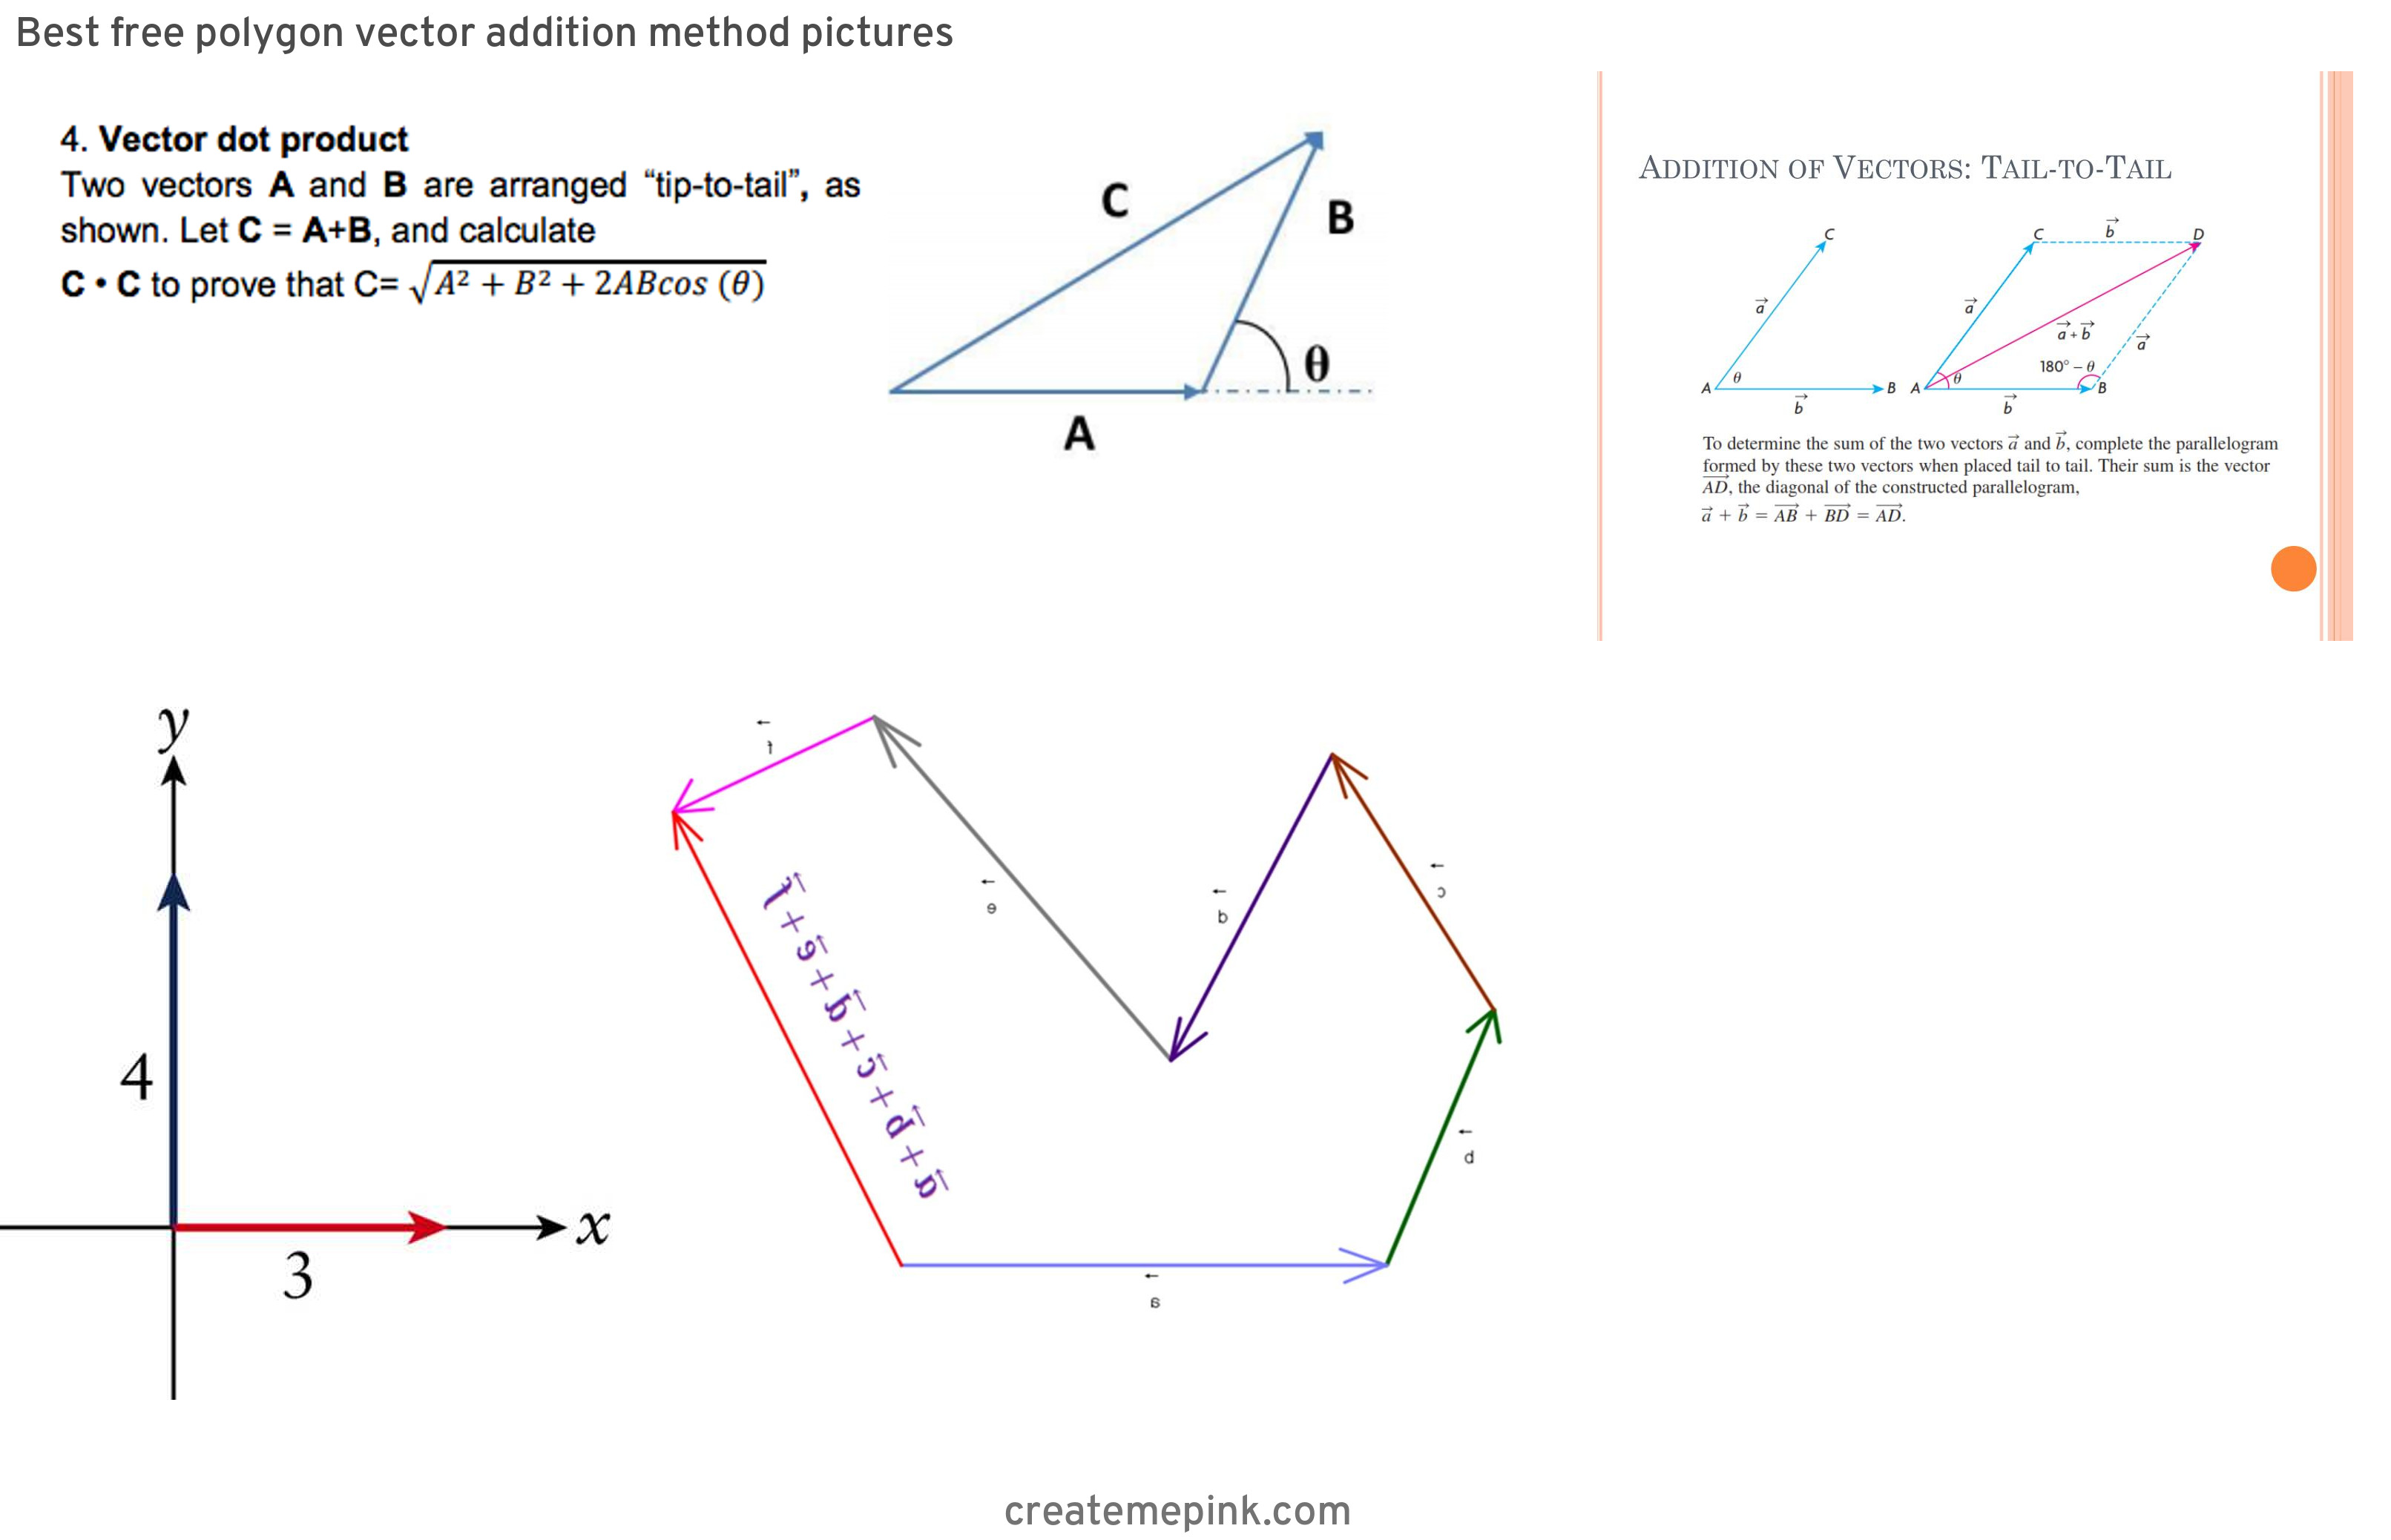 Two Vectors Tail To Tail: Best Free Polygon Vector Addition Method Pictures